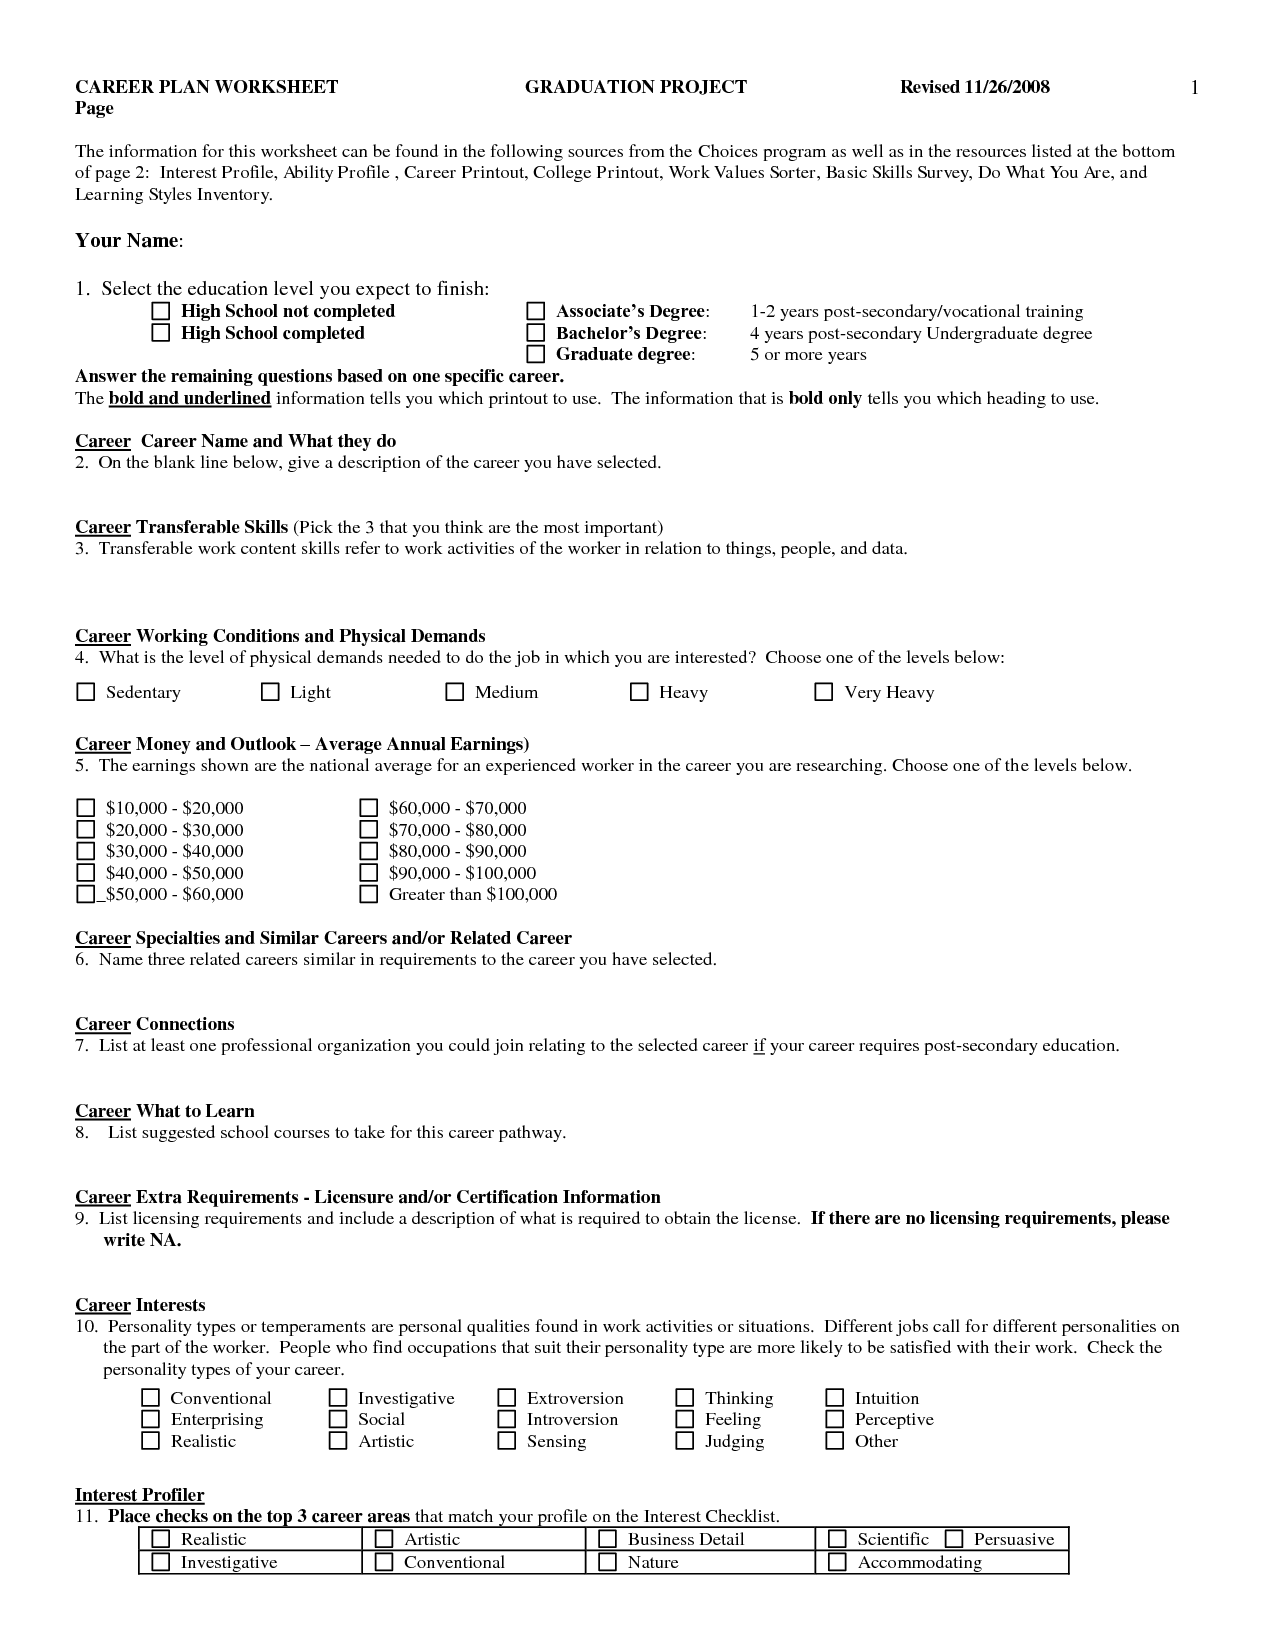 15 Best Images Of Career Development Worksheets